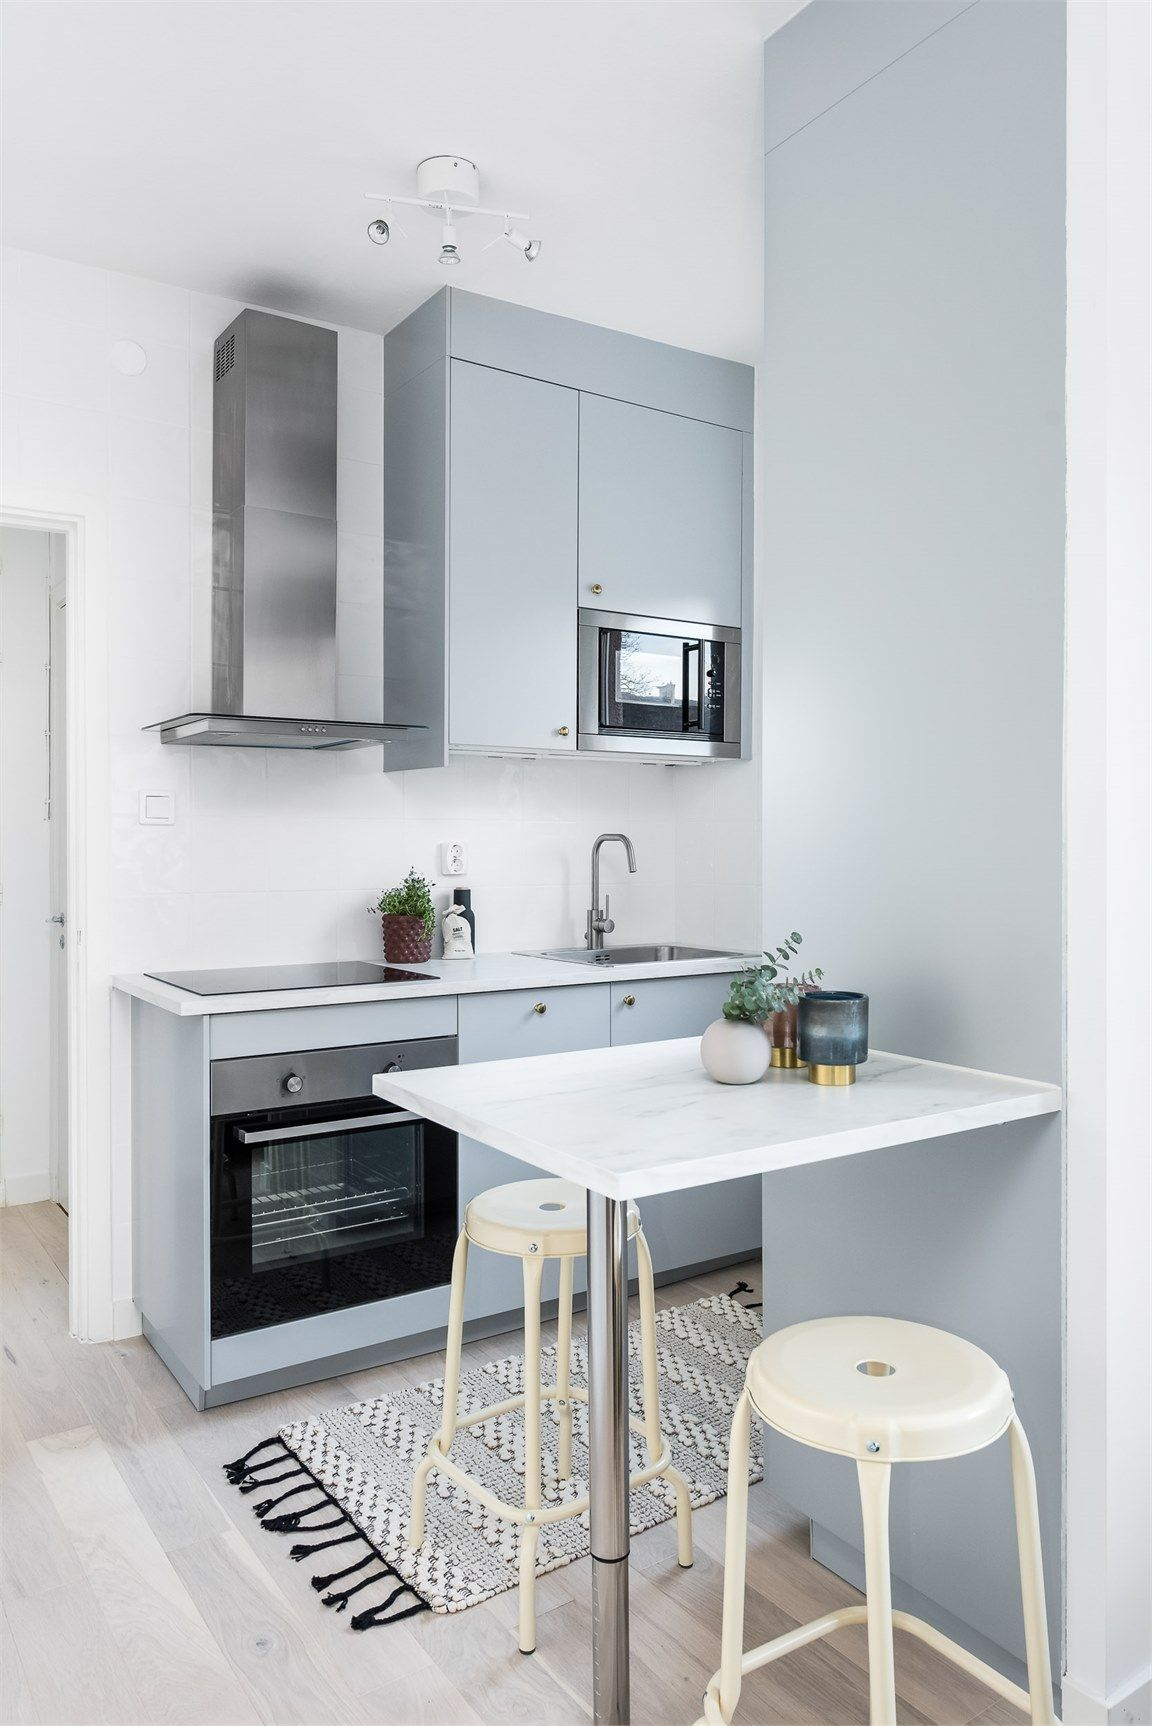 50 Splendid Small Kitchens And Ideas You Can Use From Them Small Apartment Kitchen Tiny Kitchen Design Small Space Kitchen